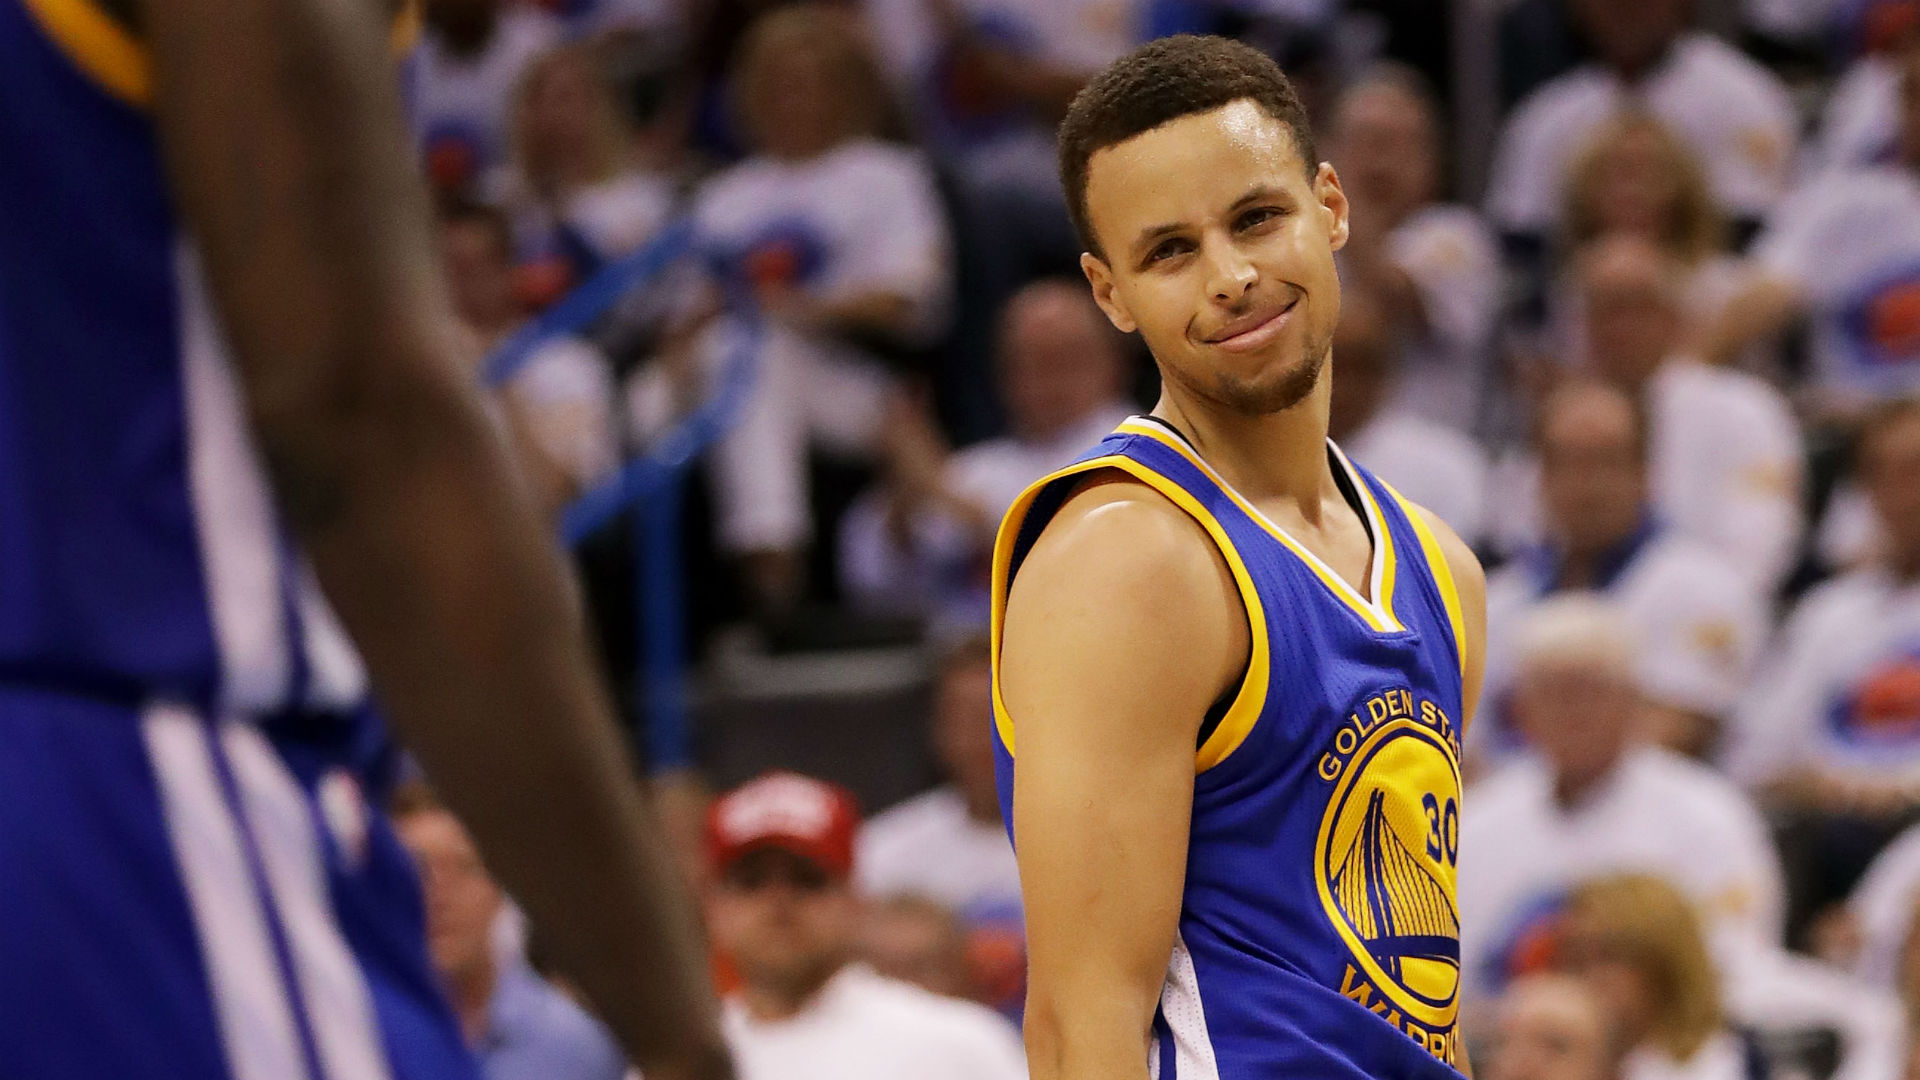 Stephen Curry says 'the series isn't over', but it sure is close | NBA | Sporting News